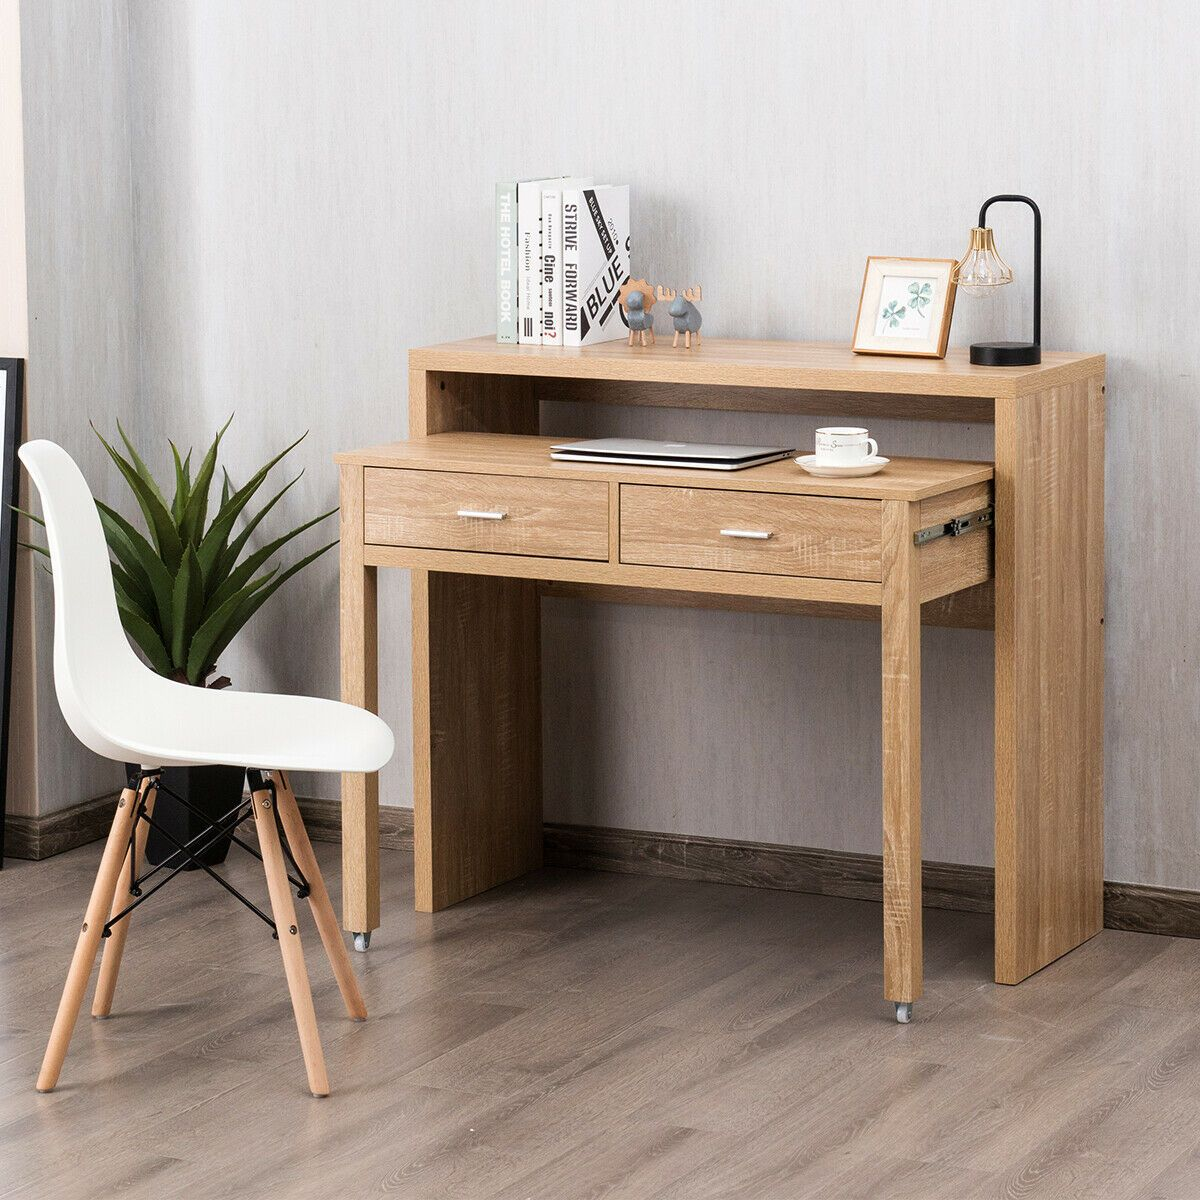 Extendable Computer Desk With Pull Out Secondary Desk Computer Desk Living Room Computer Desk Modern Furniture Living Room